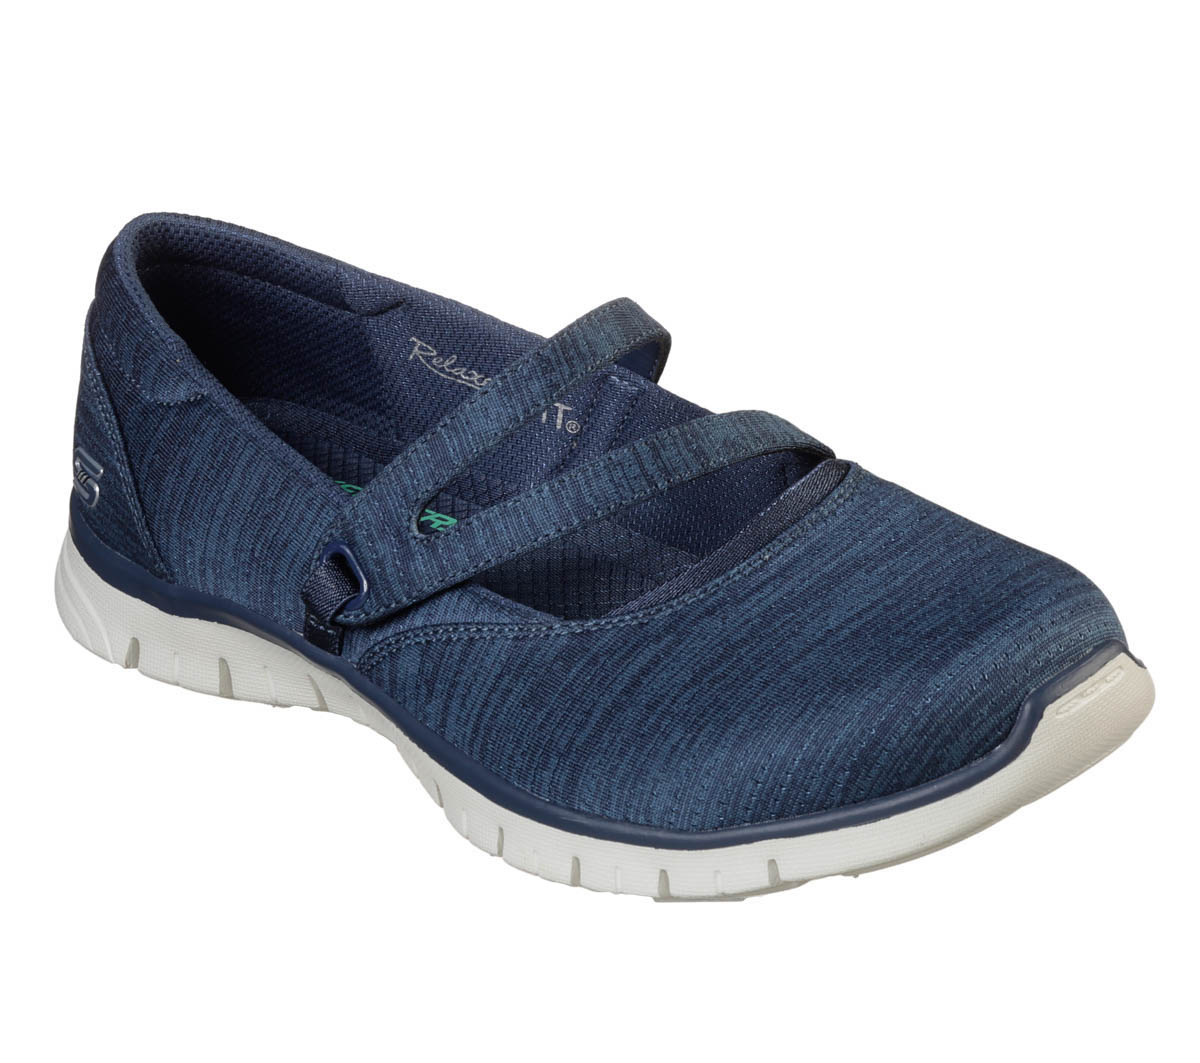 db119dba84ca Skechers Make It Count 23469 NVY Navy Mary Jane Shoes